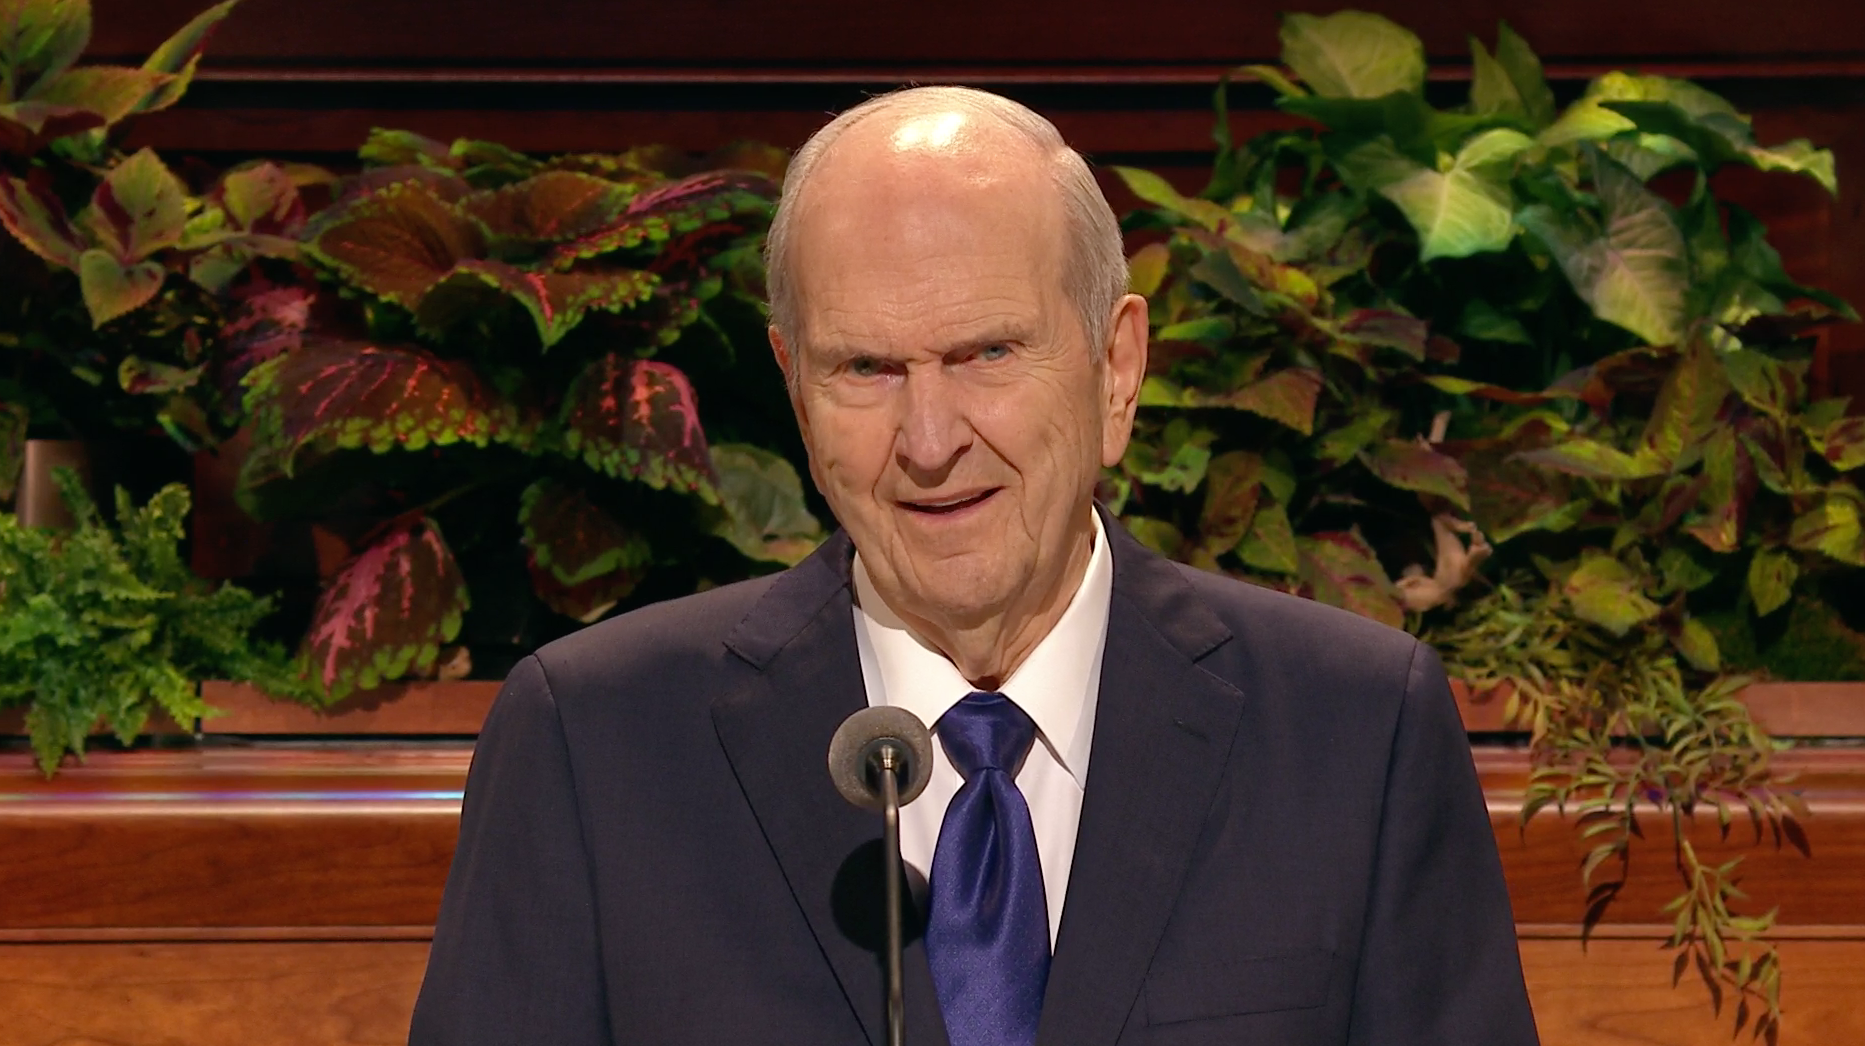 President Russell M. Nelson, president of the Church, speaks during the general women's session in the 189th Semiannual General Conference of the Church on Oct. 5, 2019.